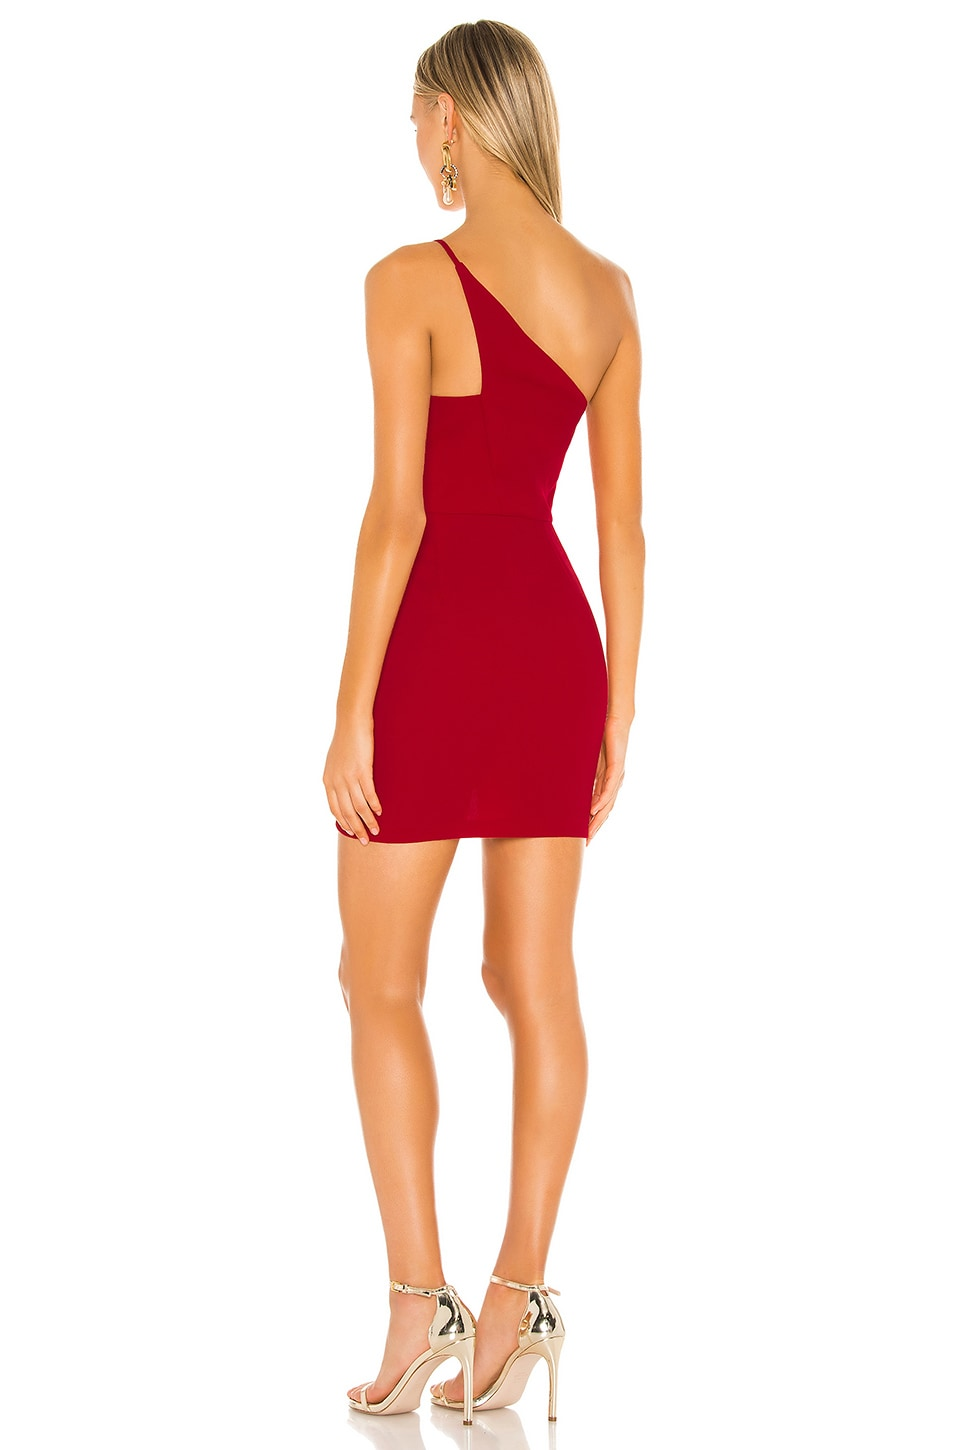 Cocktail One Shoulder Dress, view 3, click to view large image.